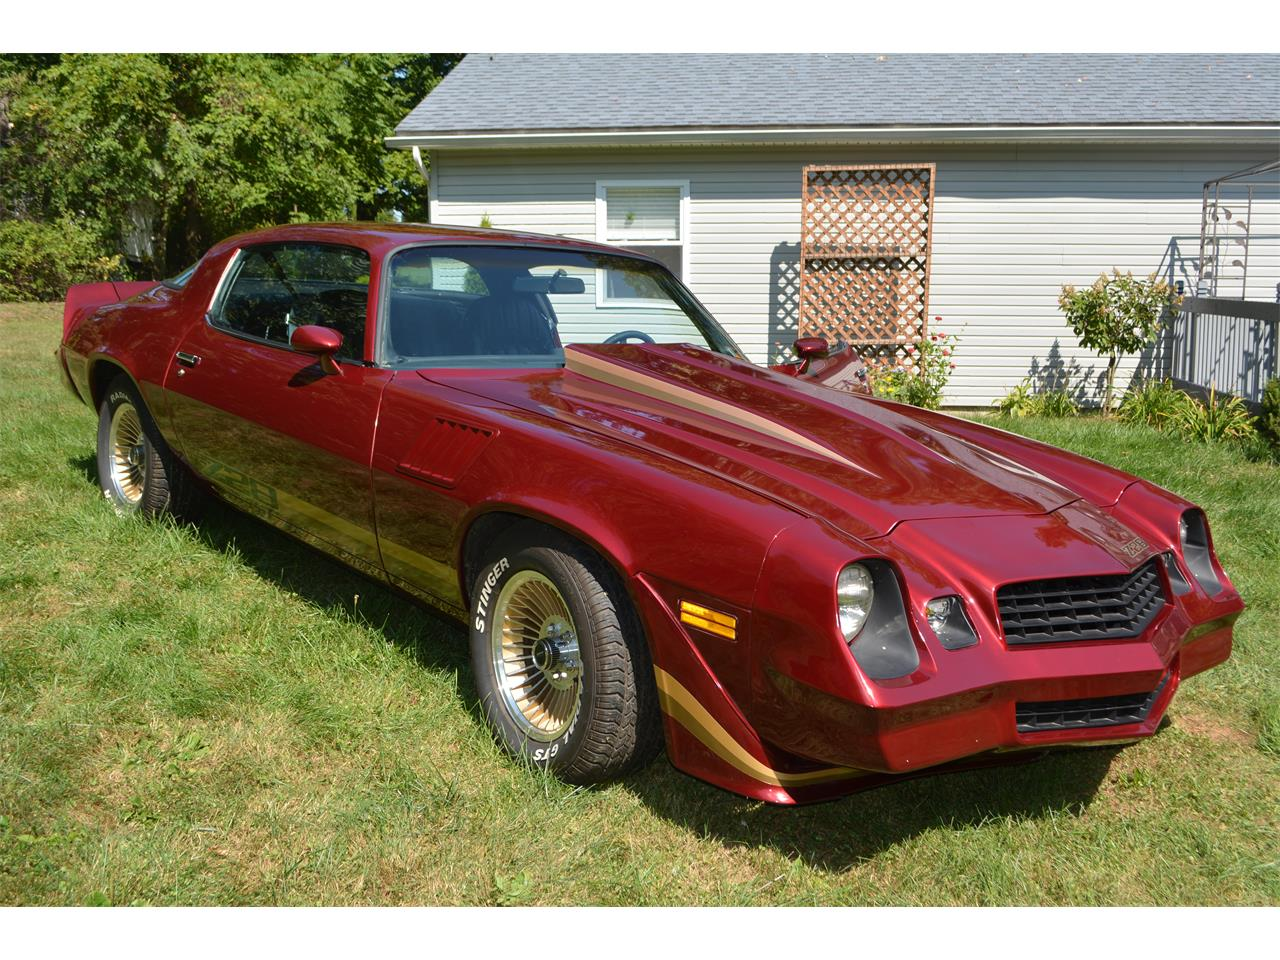 Large Picture of 1979 Camaro Z28 located in Greenville Pennsylvania Offered by a Private Seller - OTFP